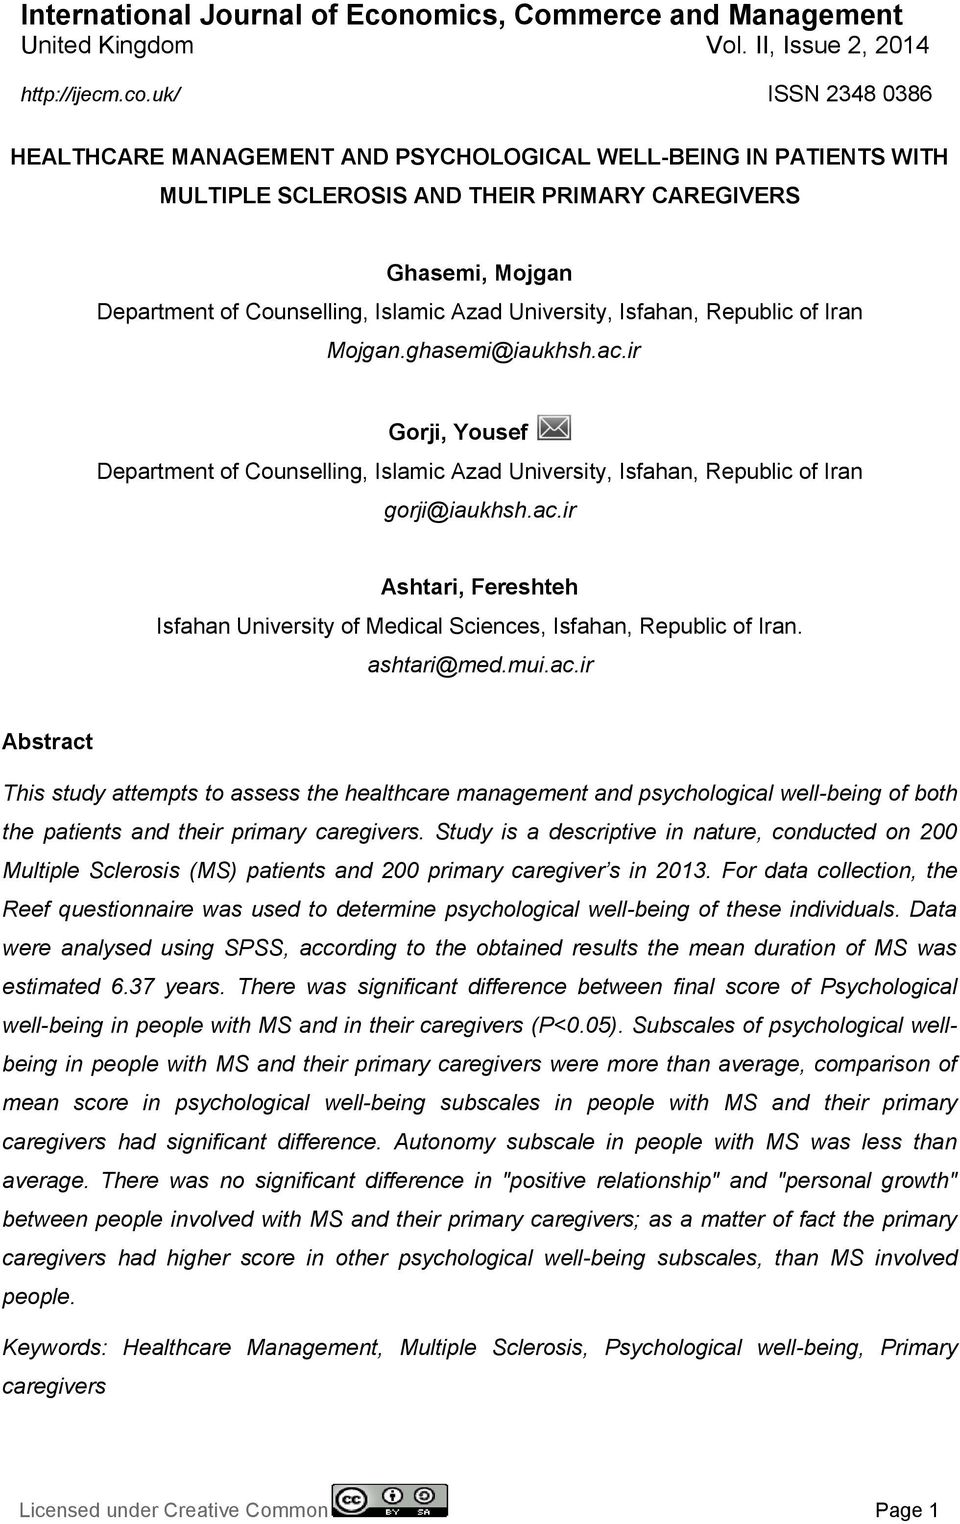 uk/ ISSN 2348 0386 HEALTHCARE MANAGEMENT AND PSYCHOLOGICAL WELL-BEING IN PATIENTS WITH MULTIPLE SCLEROSIS AND THEIR PRIMARY CAREGIVERS Ghasemi, Mojgan Department of Counselling, Islamic Azad